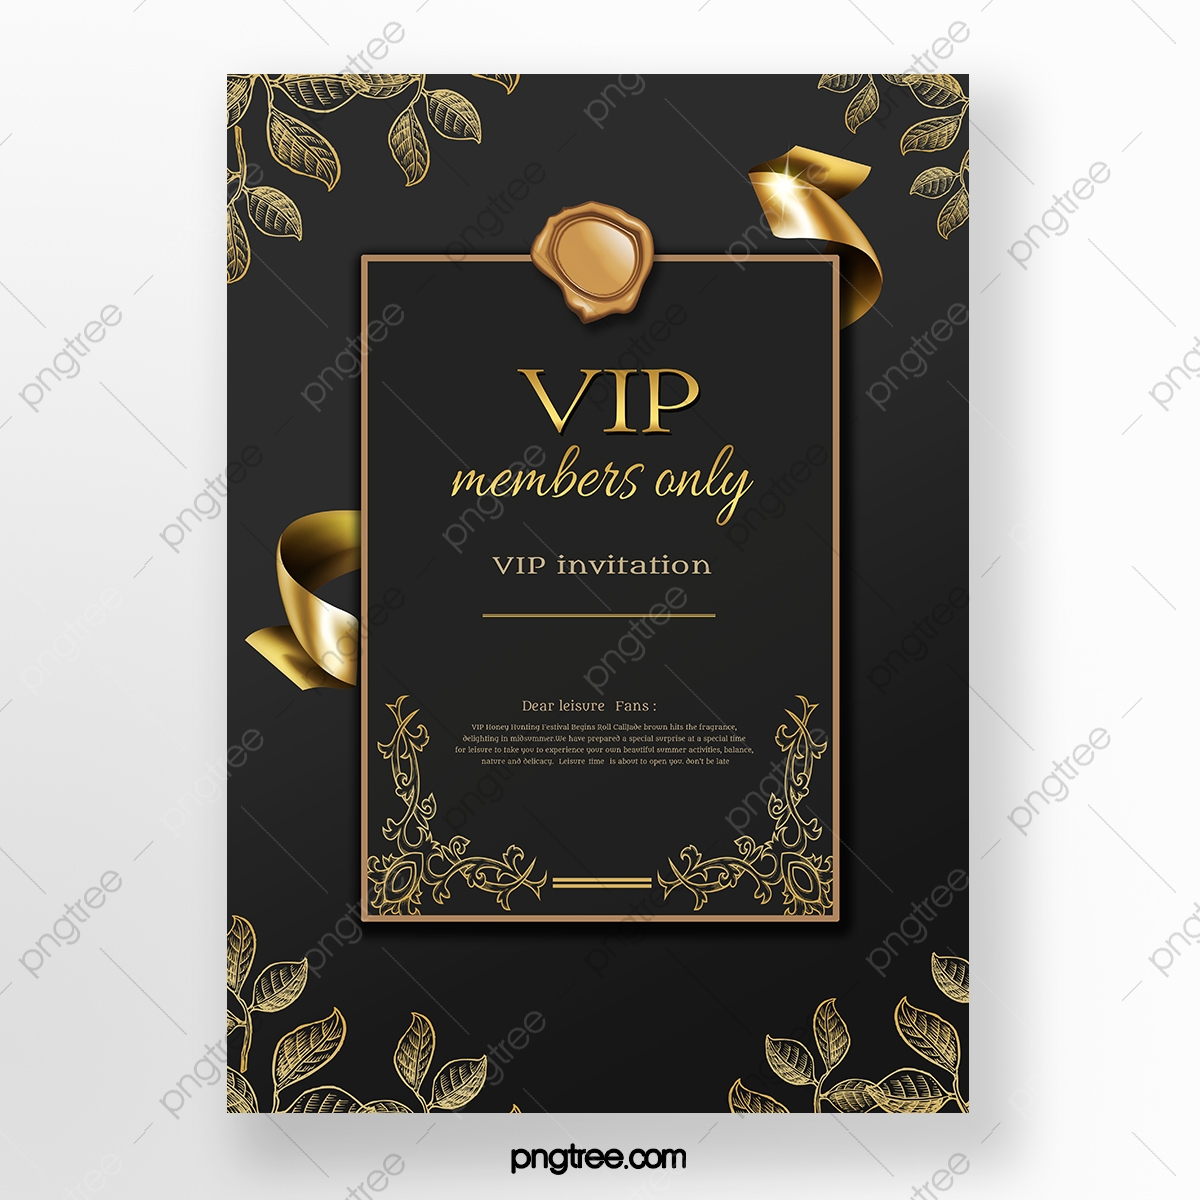 Black Luxury Gold Luxury Vip Invitation Poster Template Download On Pngtree